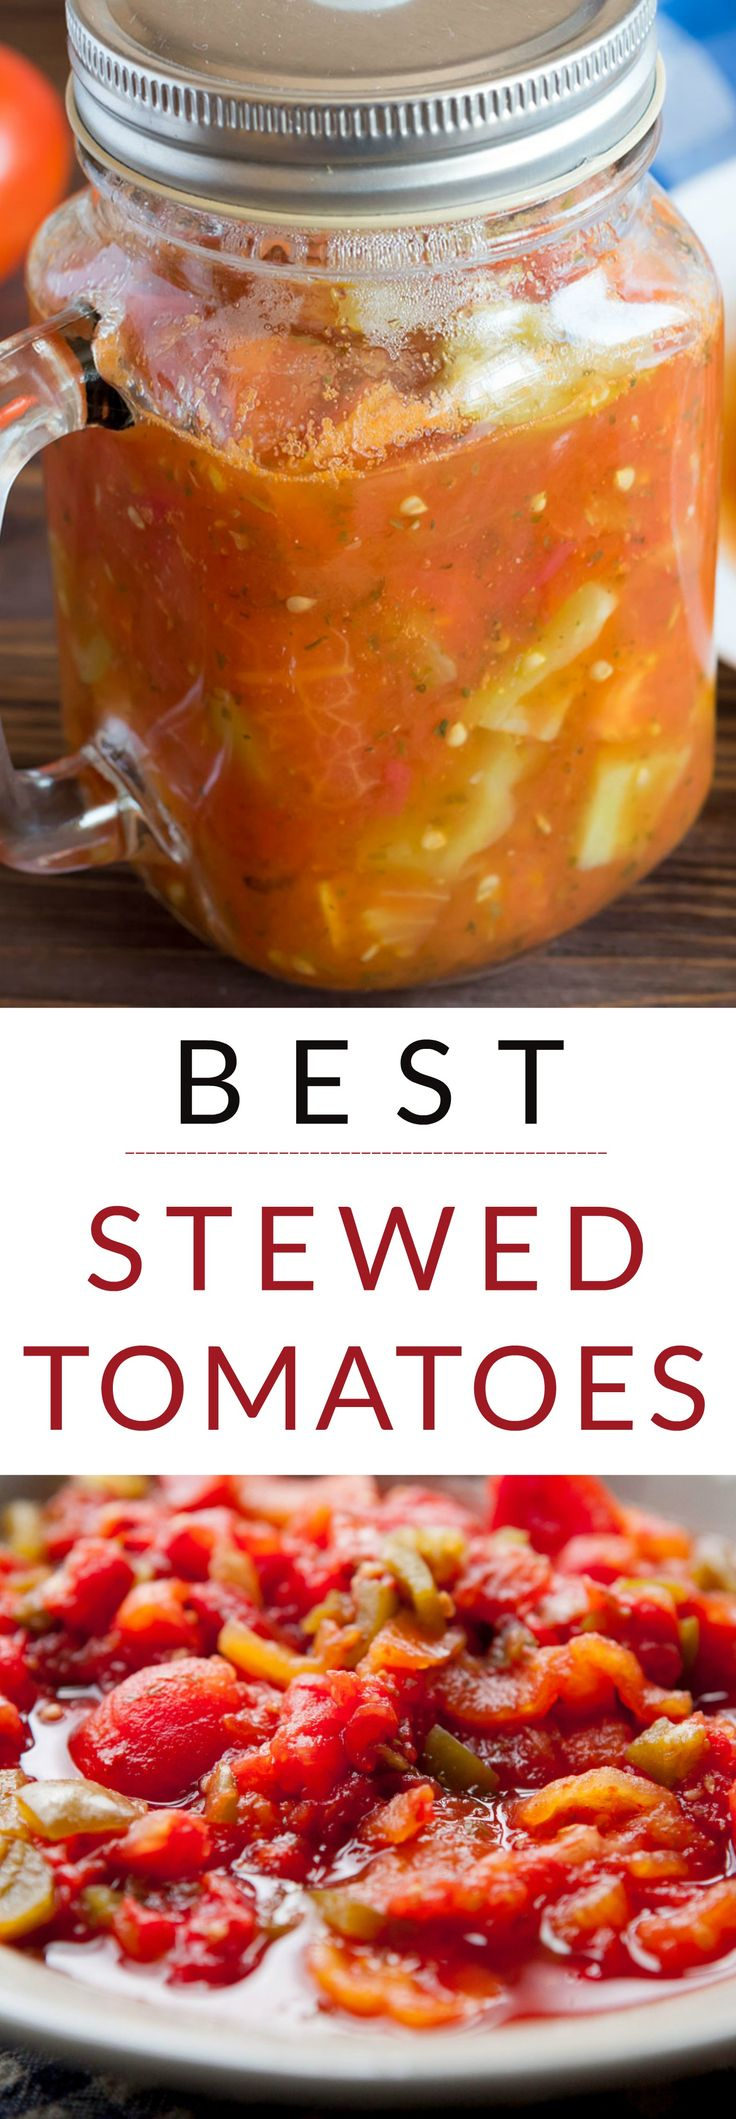 The BEST Stewed Tomatoes Ever recipe!  This easy to make recipe simmers tomatoes for 30 minutes to make homemade stewed tomatoes that can be served as a dinner side dish or can be canned.  This how to make recipe shows you how easy they are to make! Find